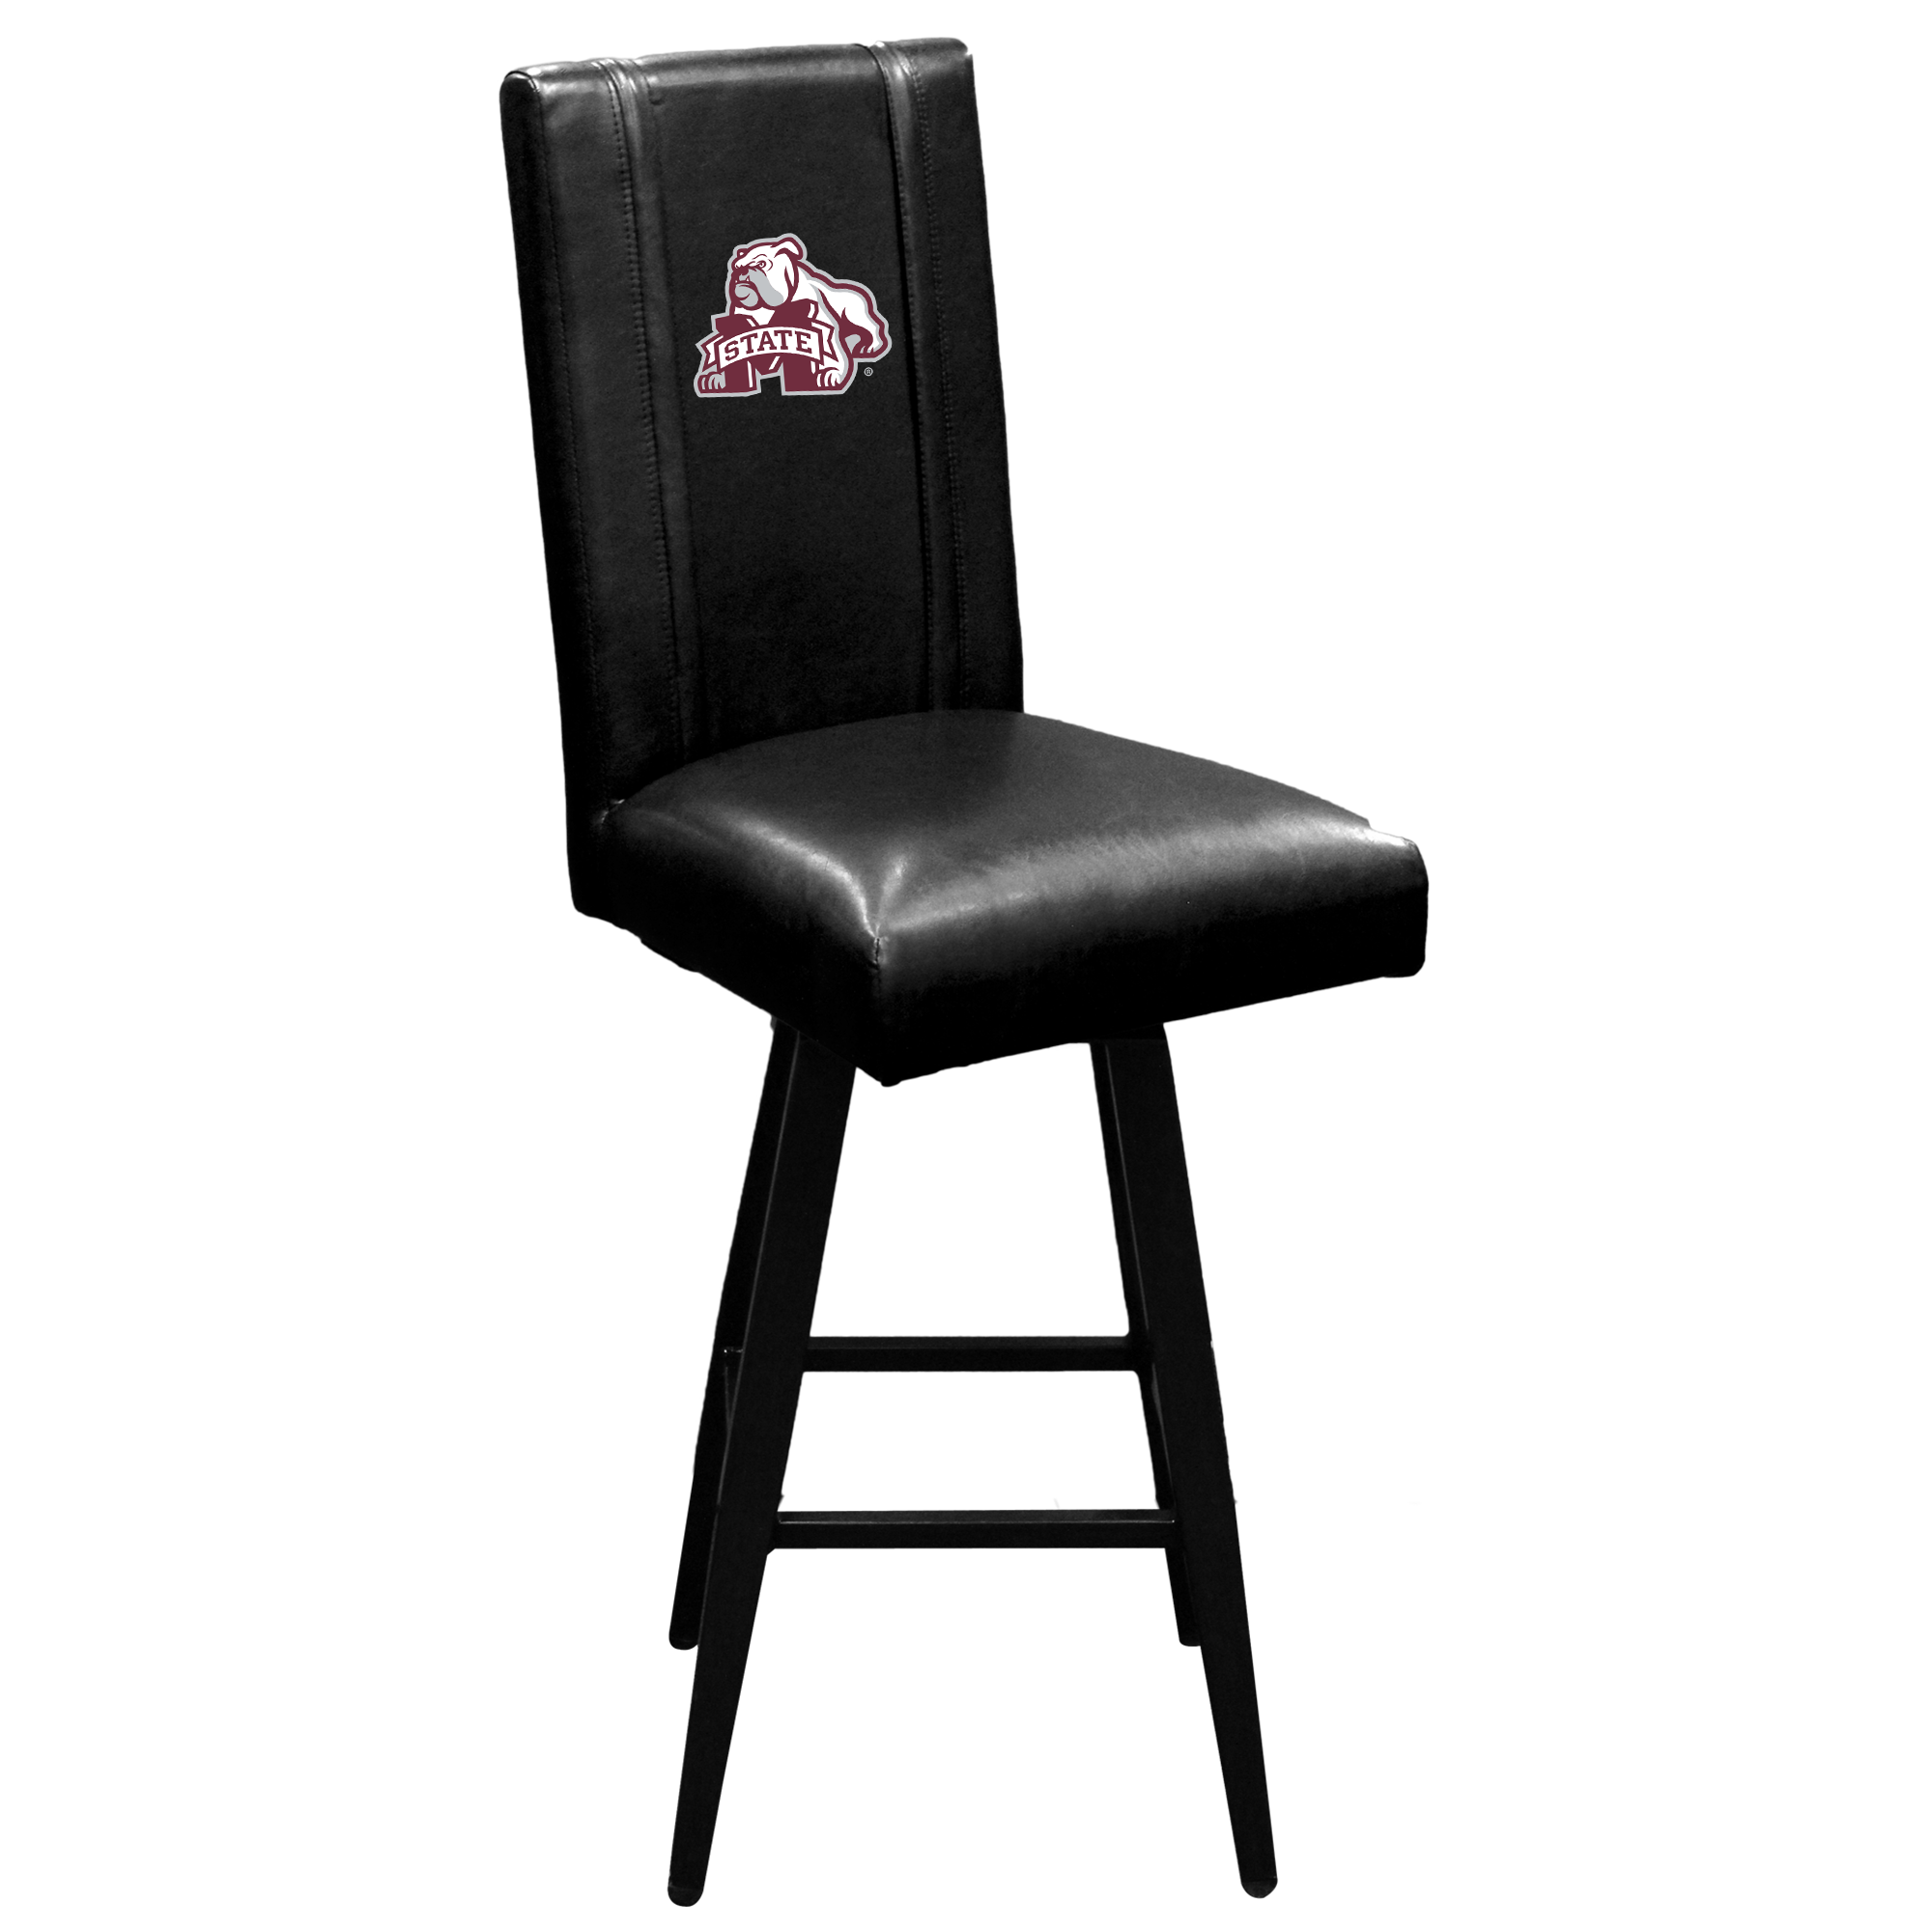 Swivel Bar Stool 2000 with Mississippi State Secondary